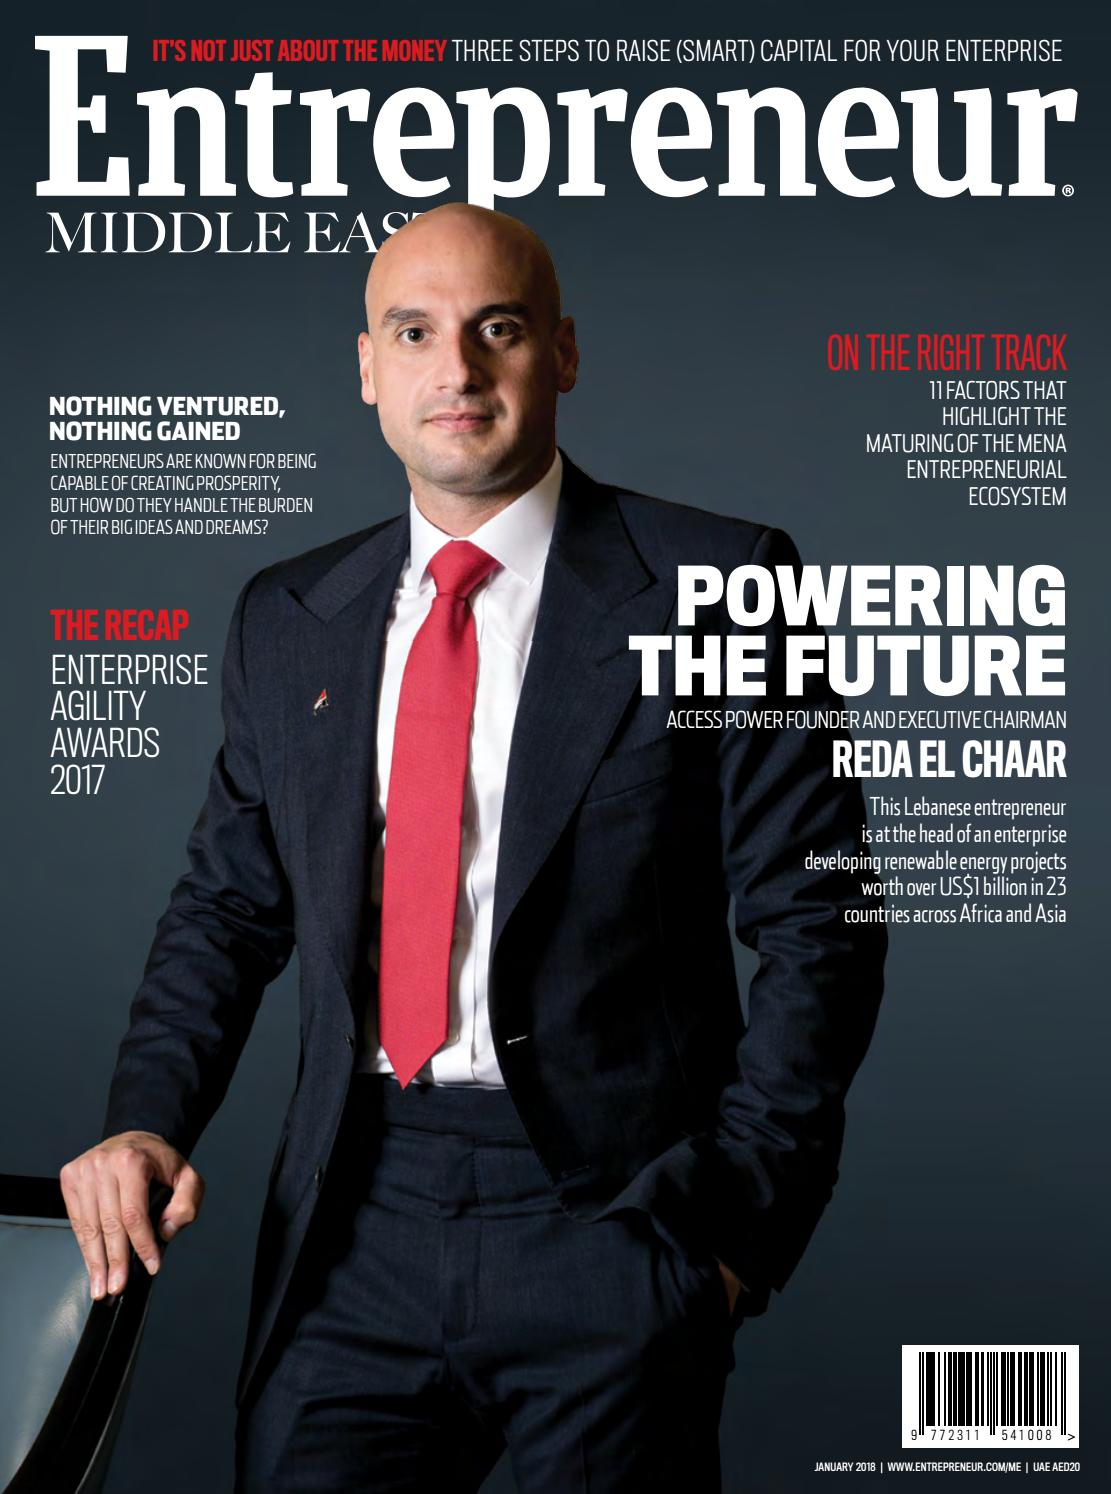 Chairman Utility Chair Uc 506 Entrepreneur Middle East January 2018 Powering The Future By Issuu